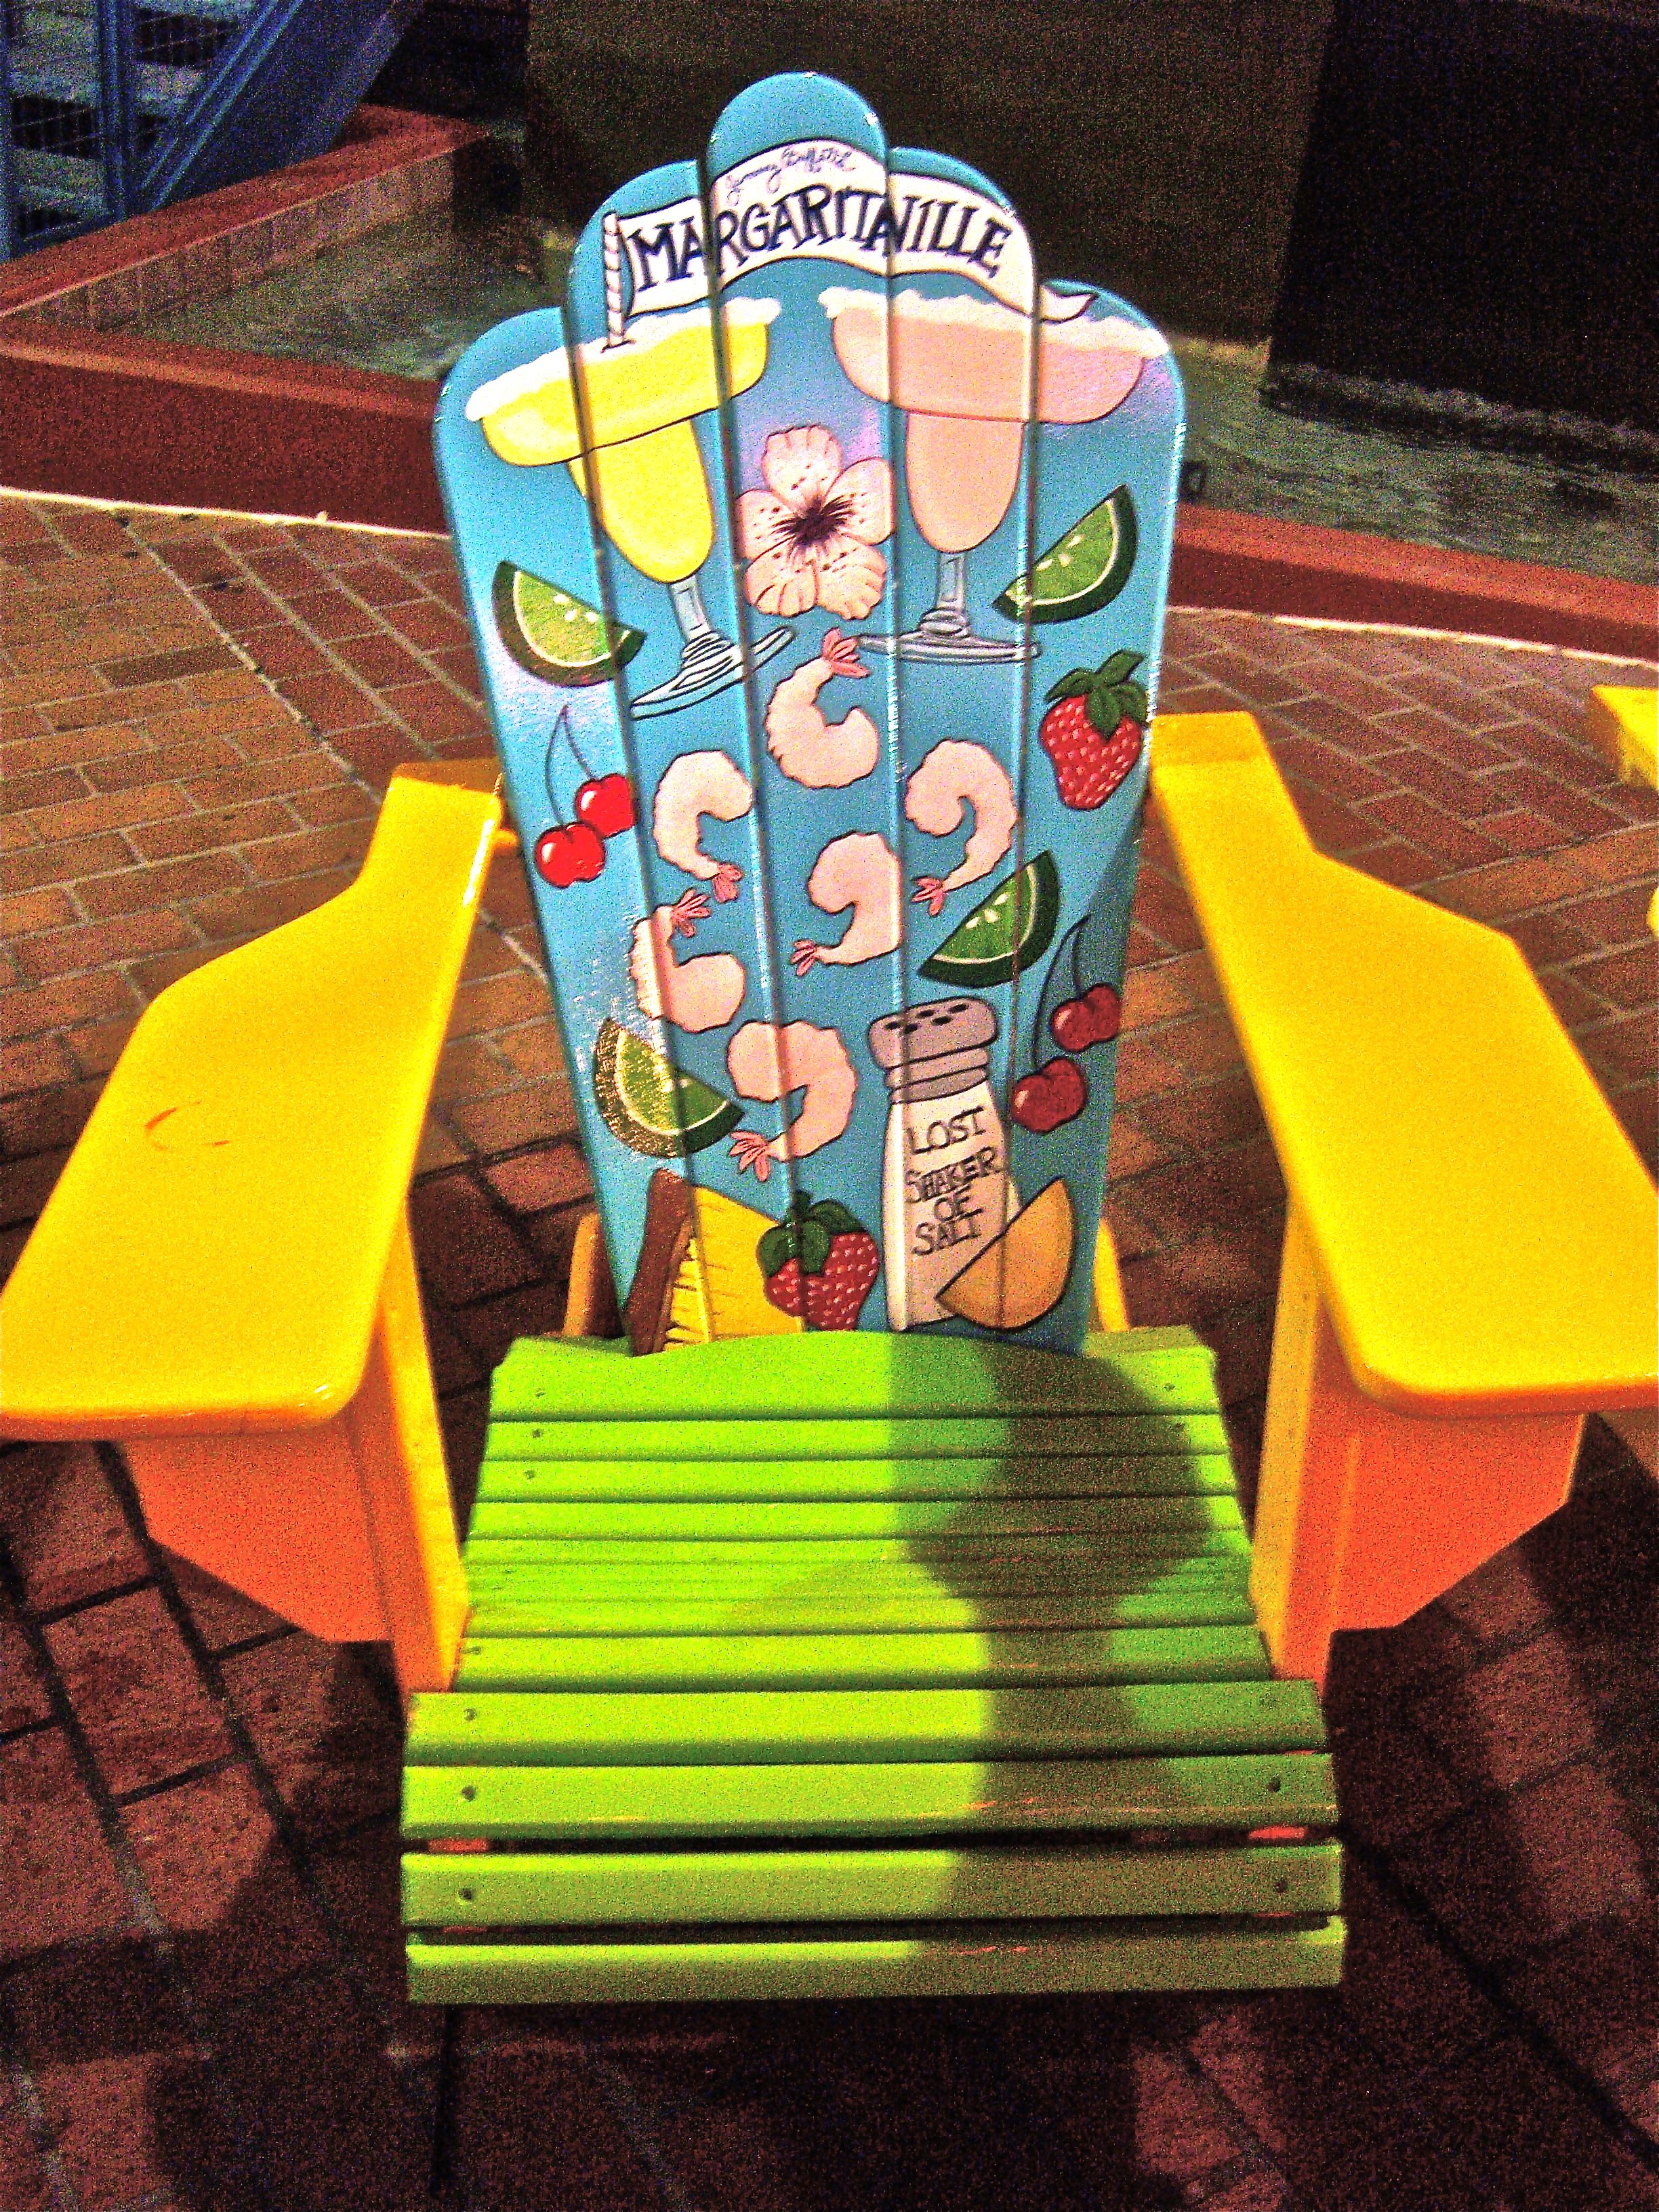 Margaritaville Chair I Could Totally Do This Pool